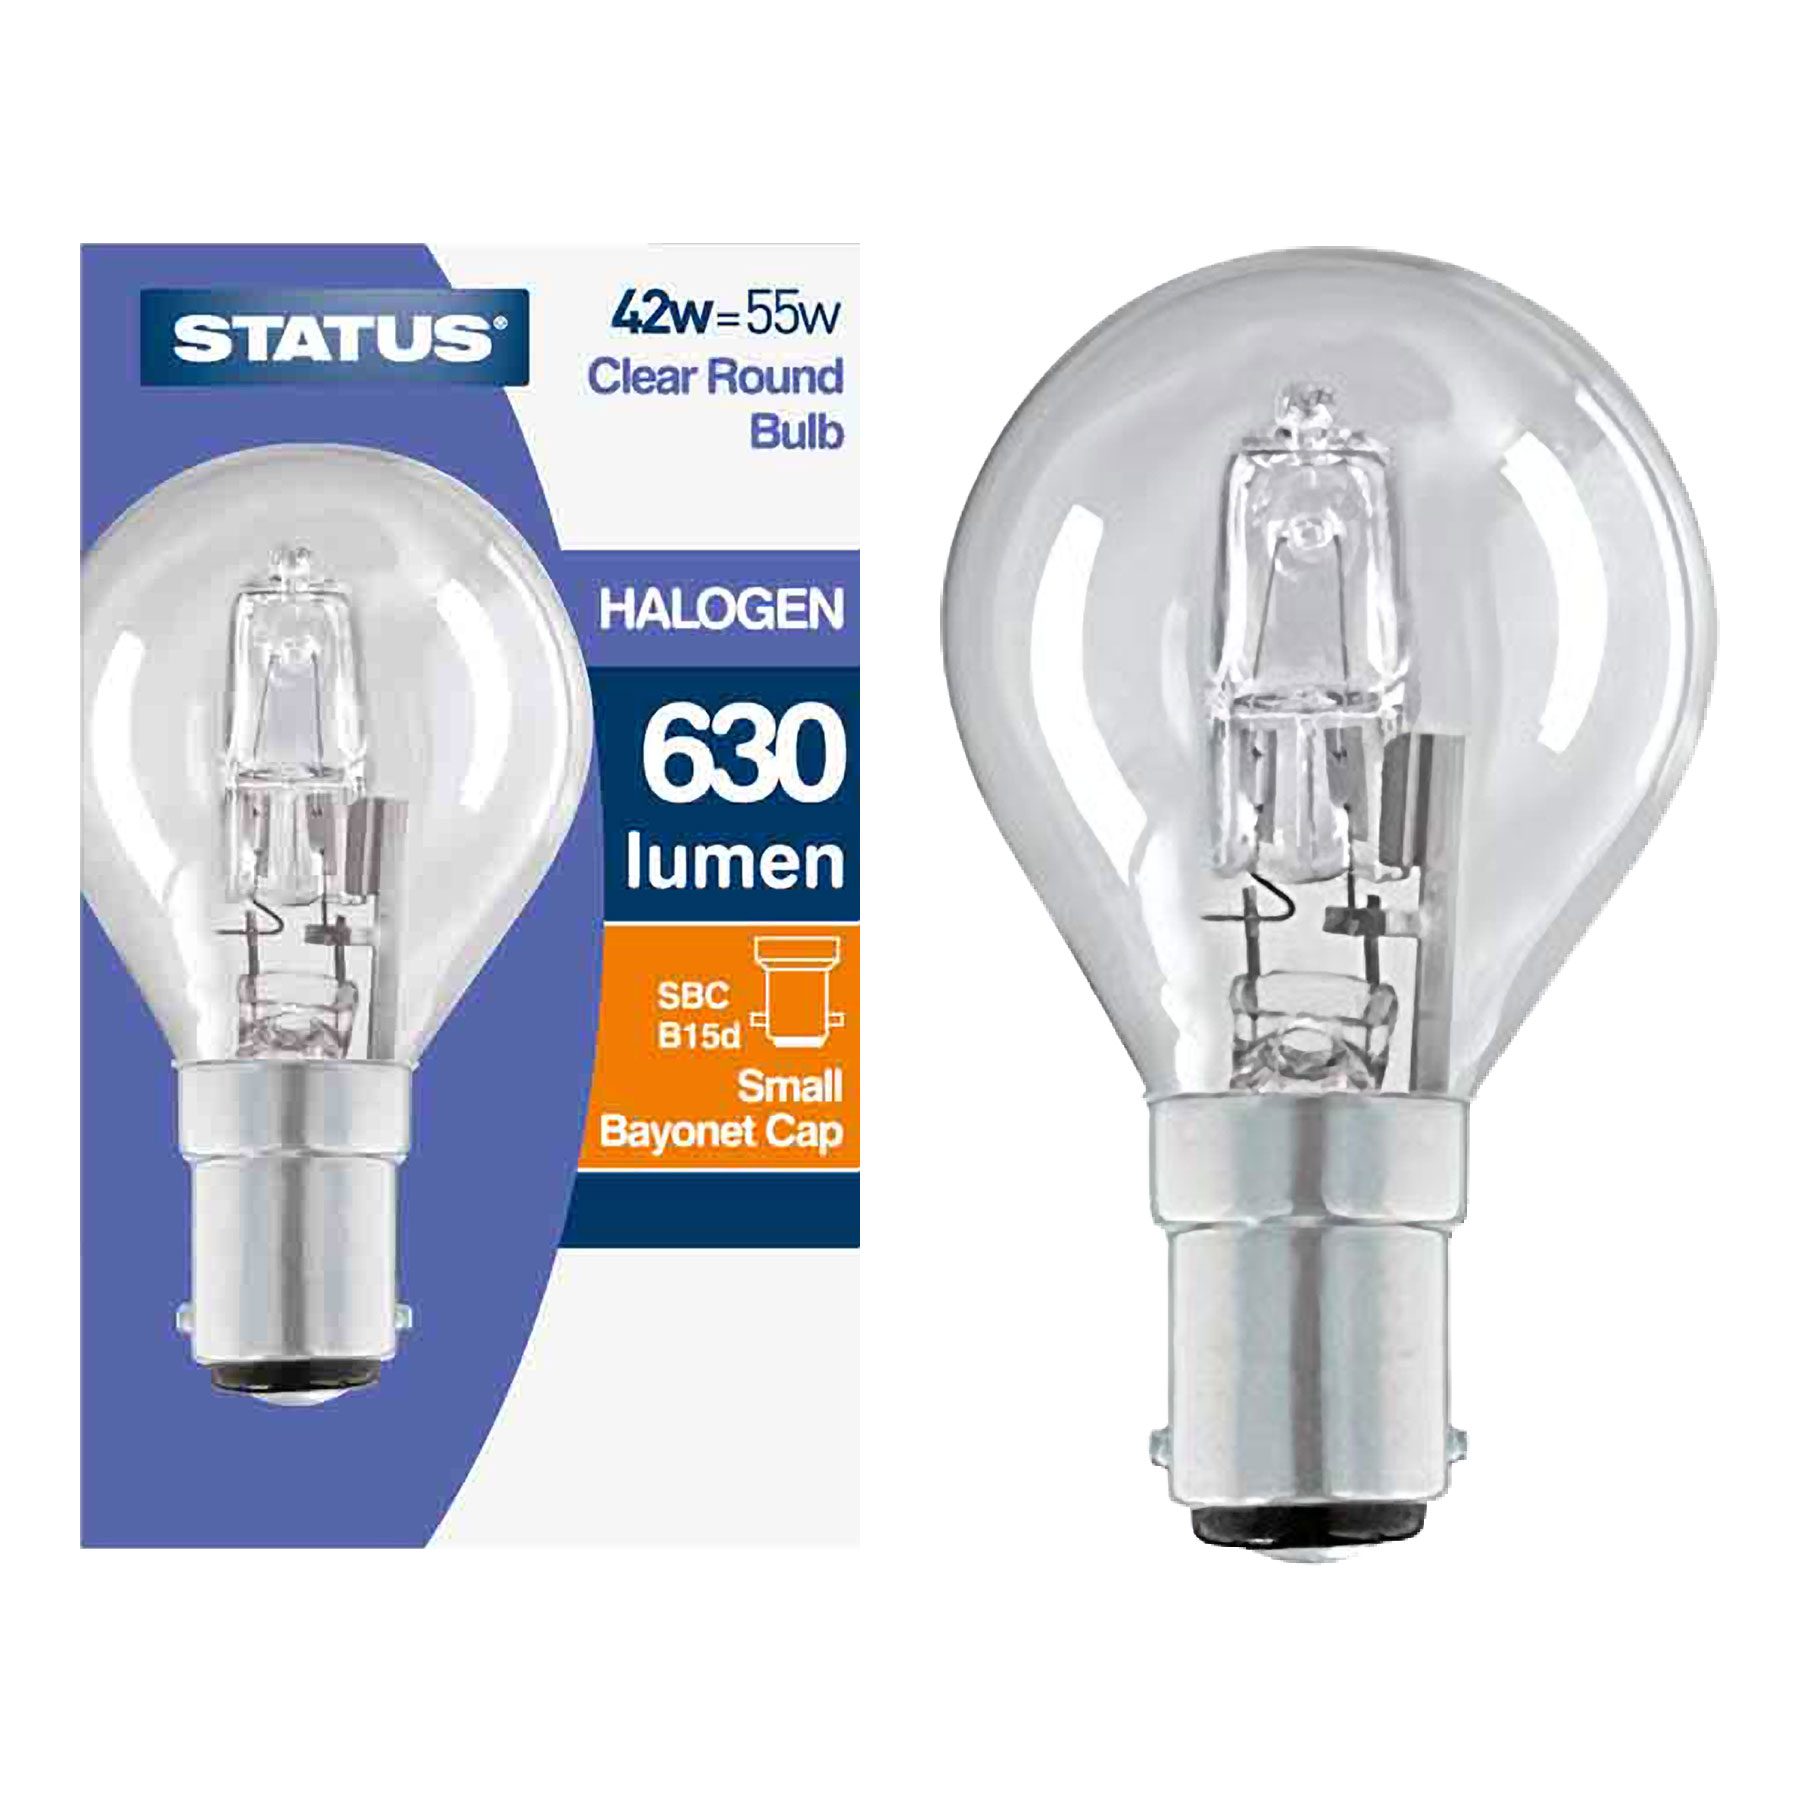 B22 Dimmable Stock Bell Clear Halogen Round Bulb 42w Equivalent 55W BC